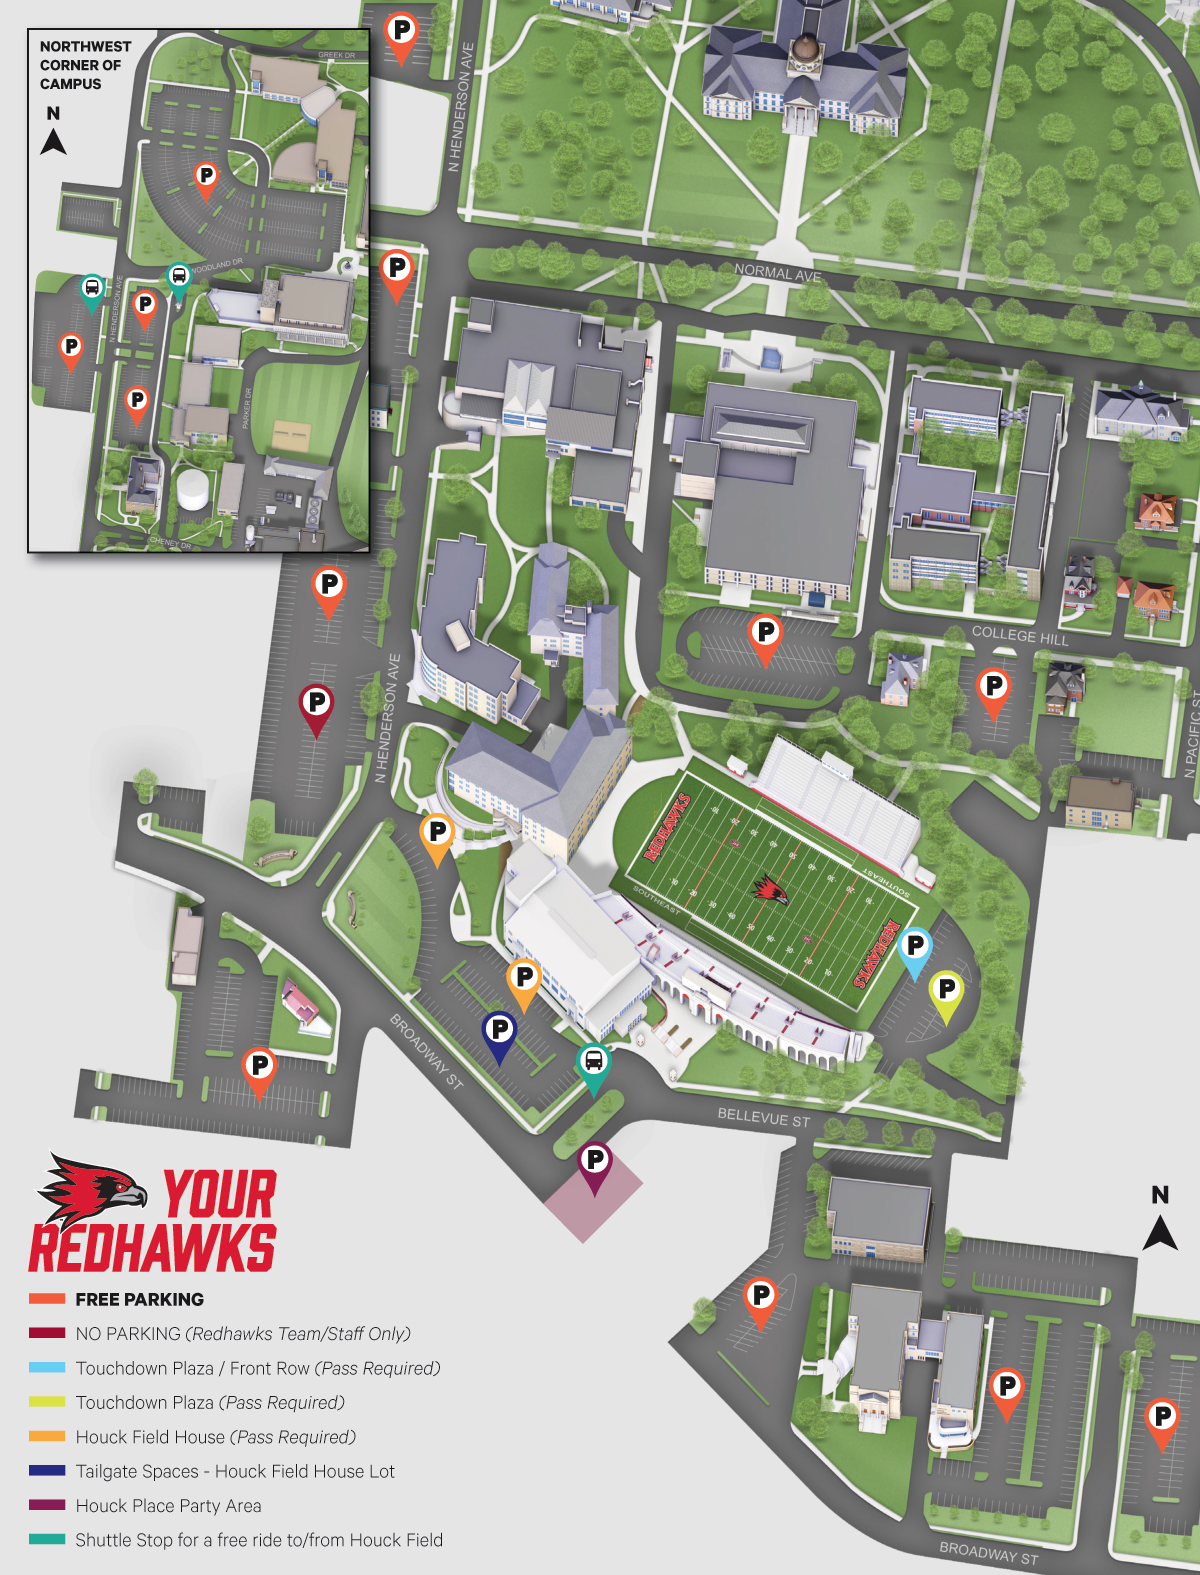 southeast missouri state university campus map Southeast Missouri State University Campus Map Map Of The World southeast missouri state university campus map